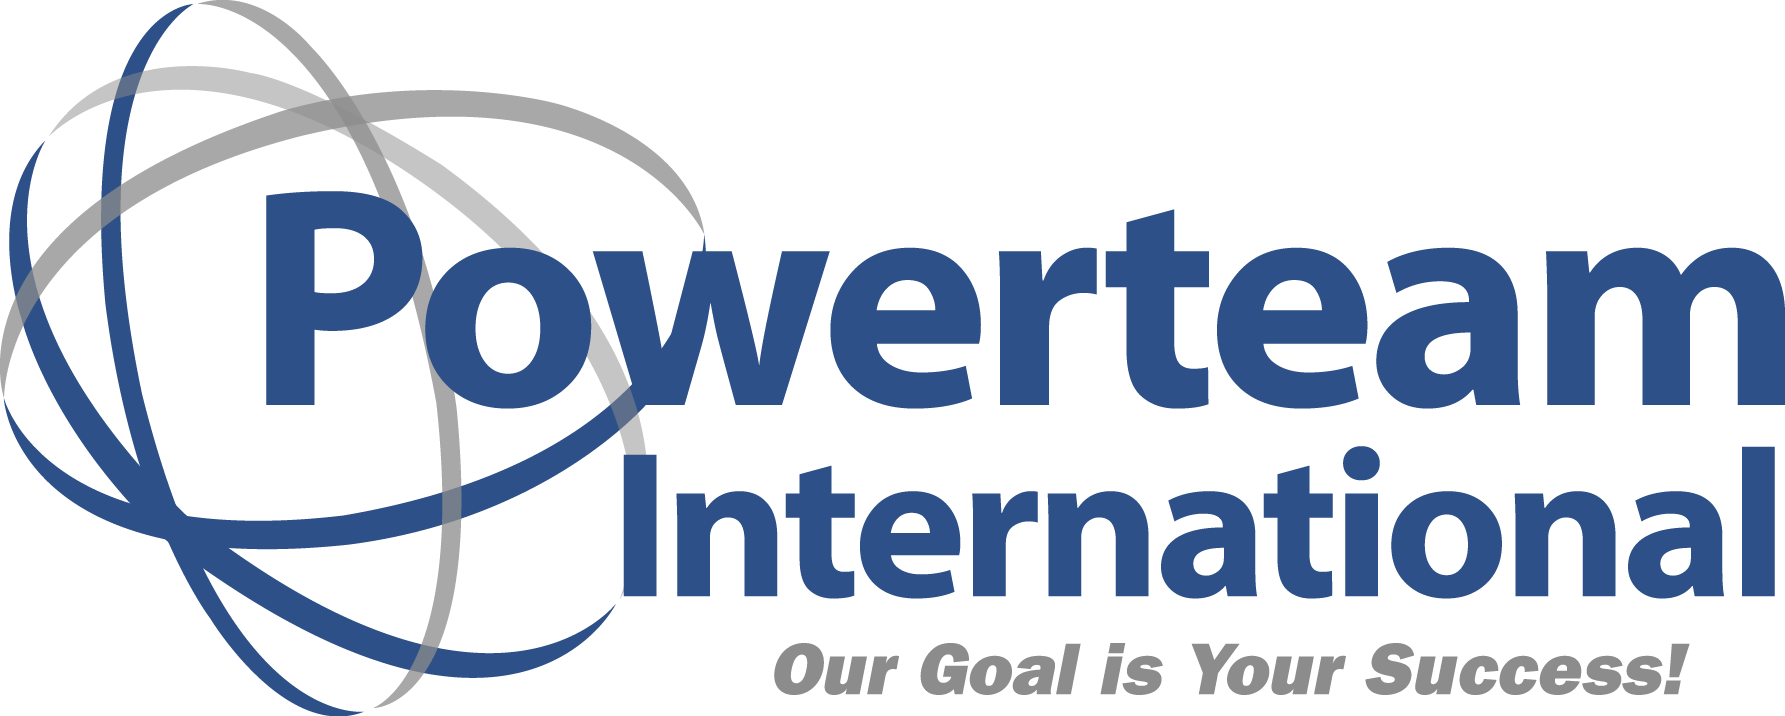 Powerteam International